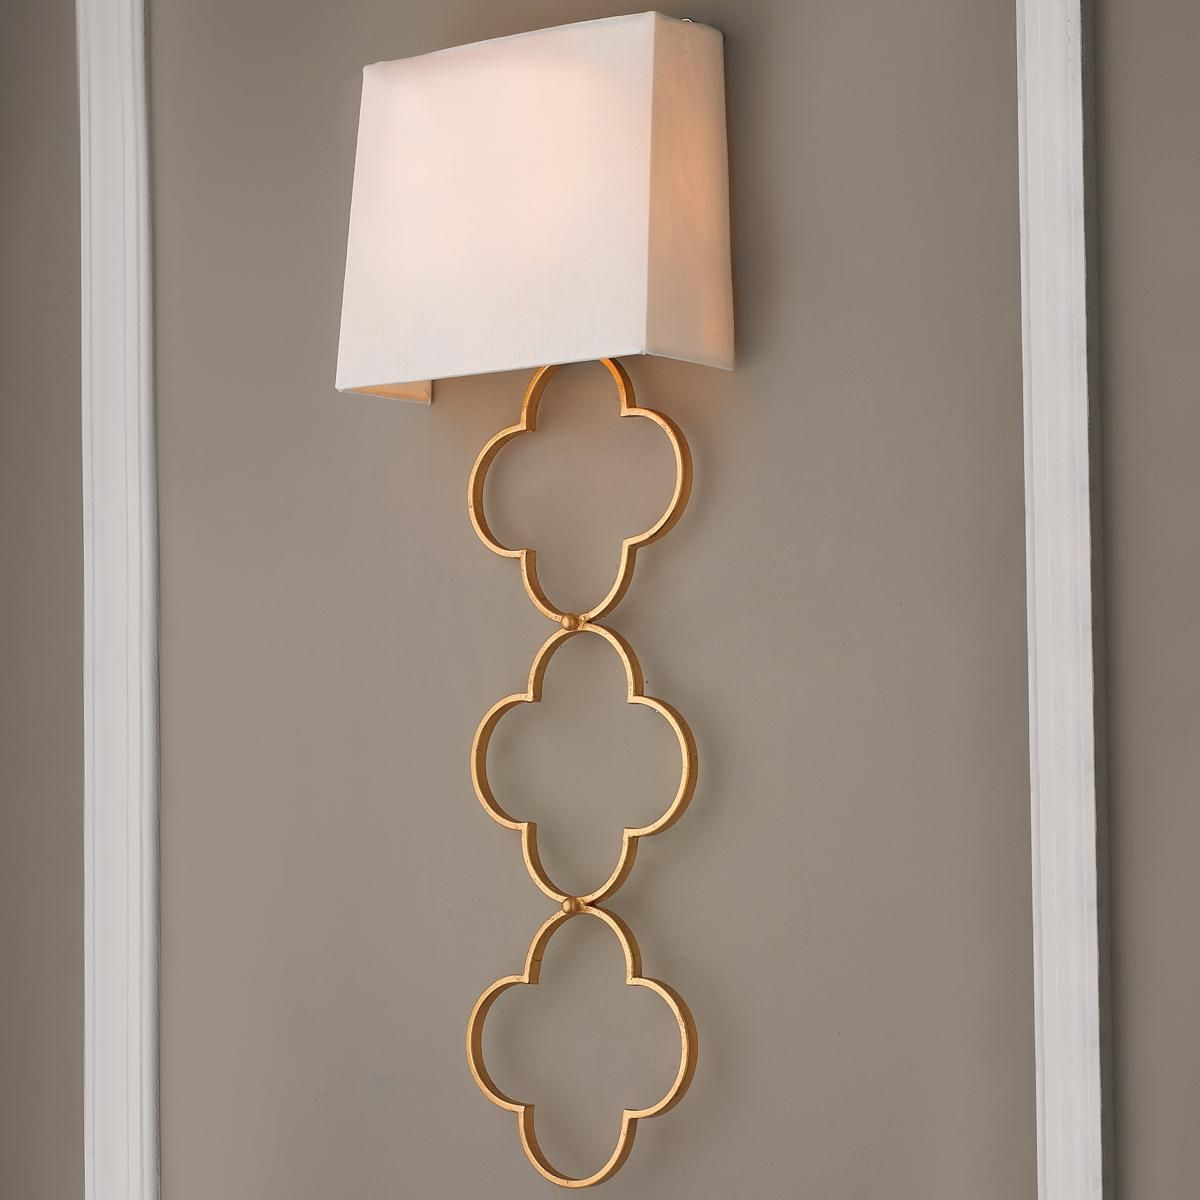 Wall Sconce Half Lamp Shades : ADA Quatrefoil Chain Wall Sconce This stunning wall sconce is sure to catch attention. The ...